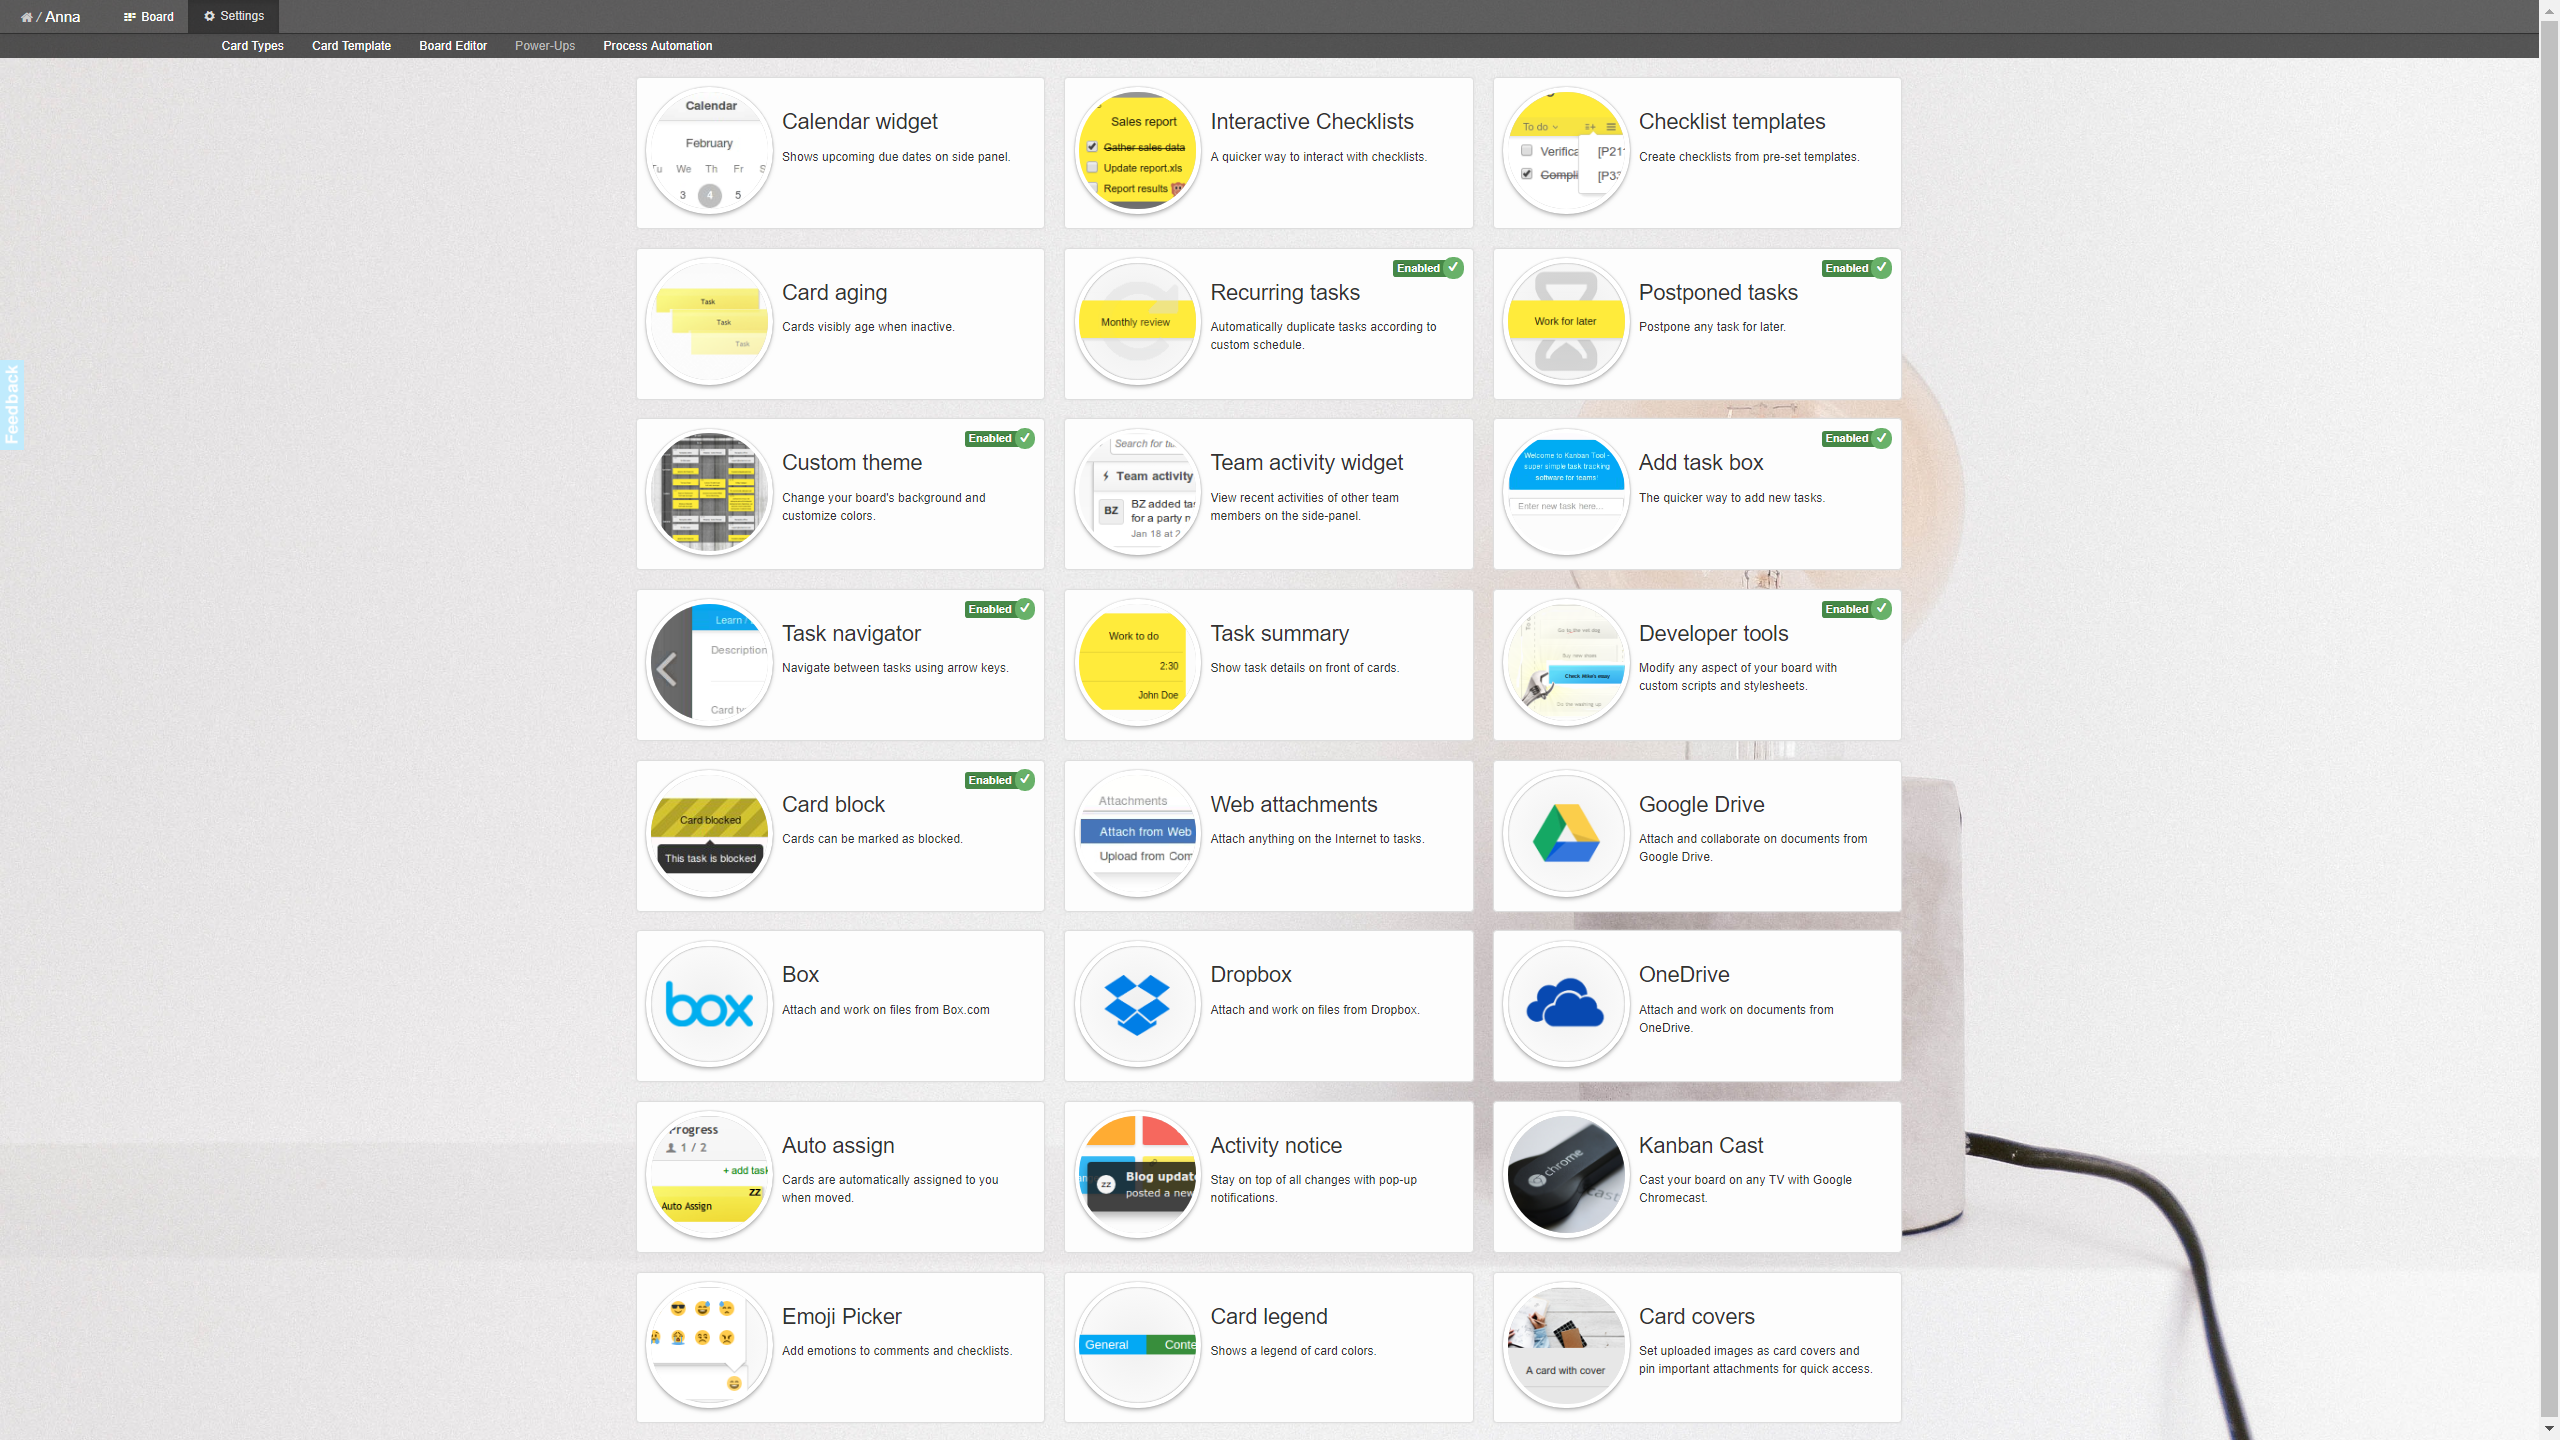 Kanban Tool offers 24 Power-Ups for free. Additionally, Enterprise plan users benefit from Process Automation and Time Tracking & Reporting features.